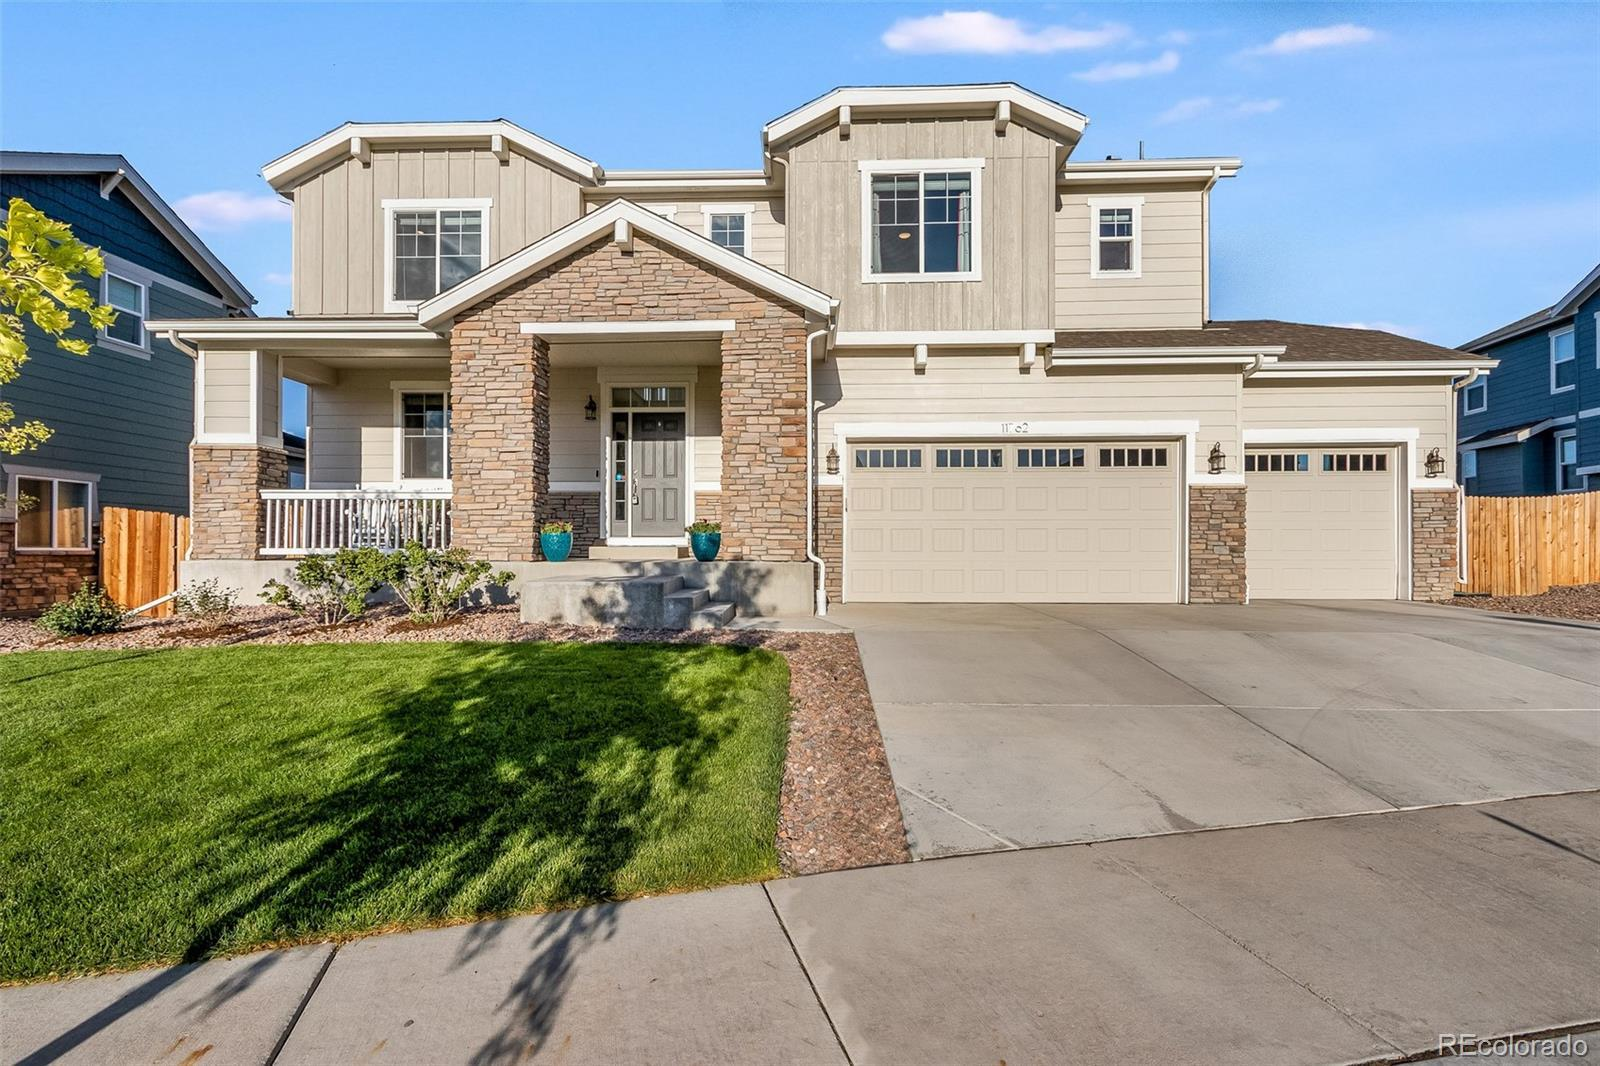 11762 Ouray Court, Commerce City, CO 80022 - #: 5401548